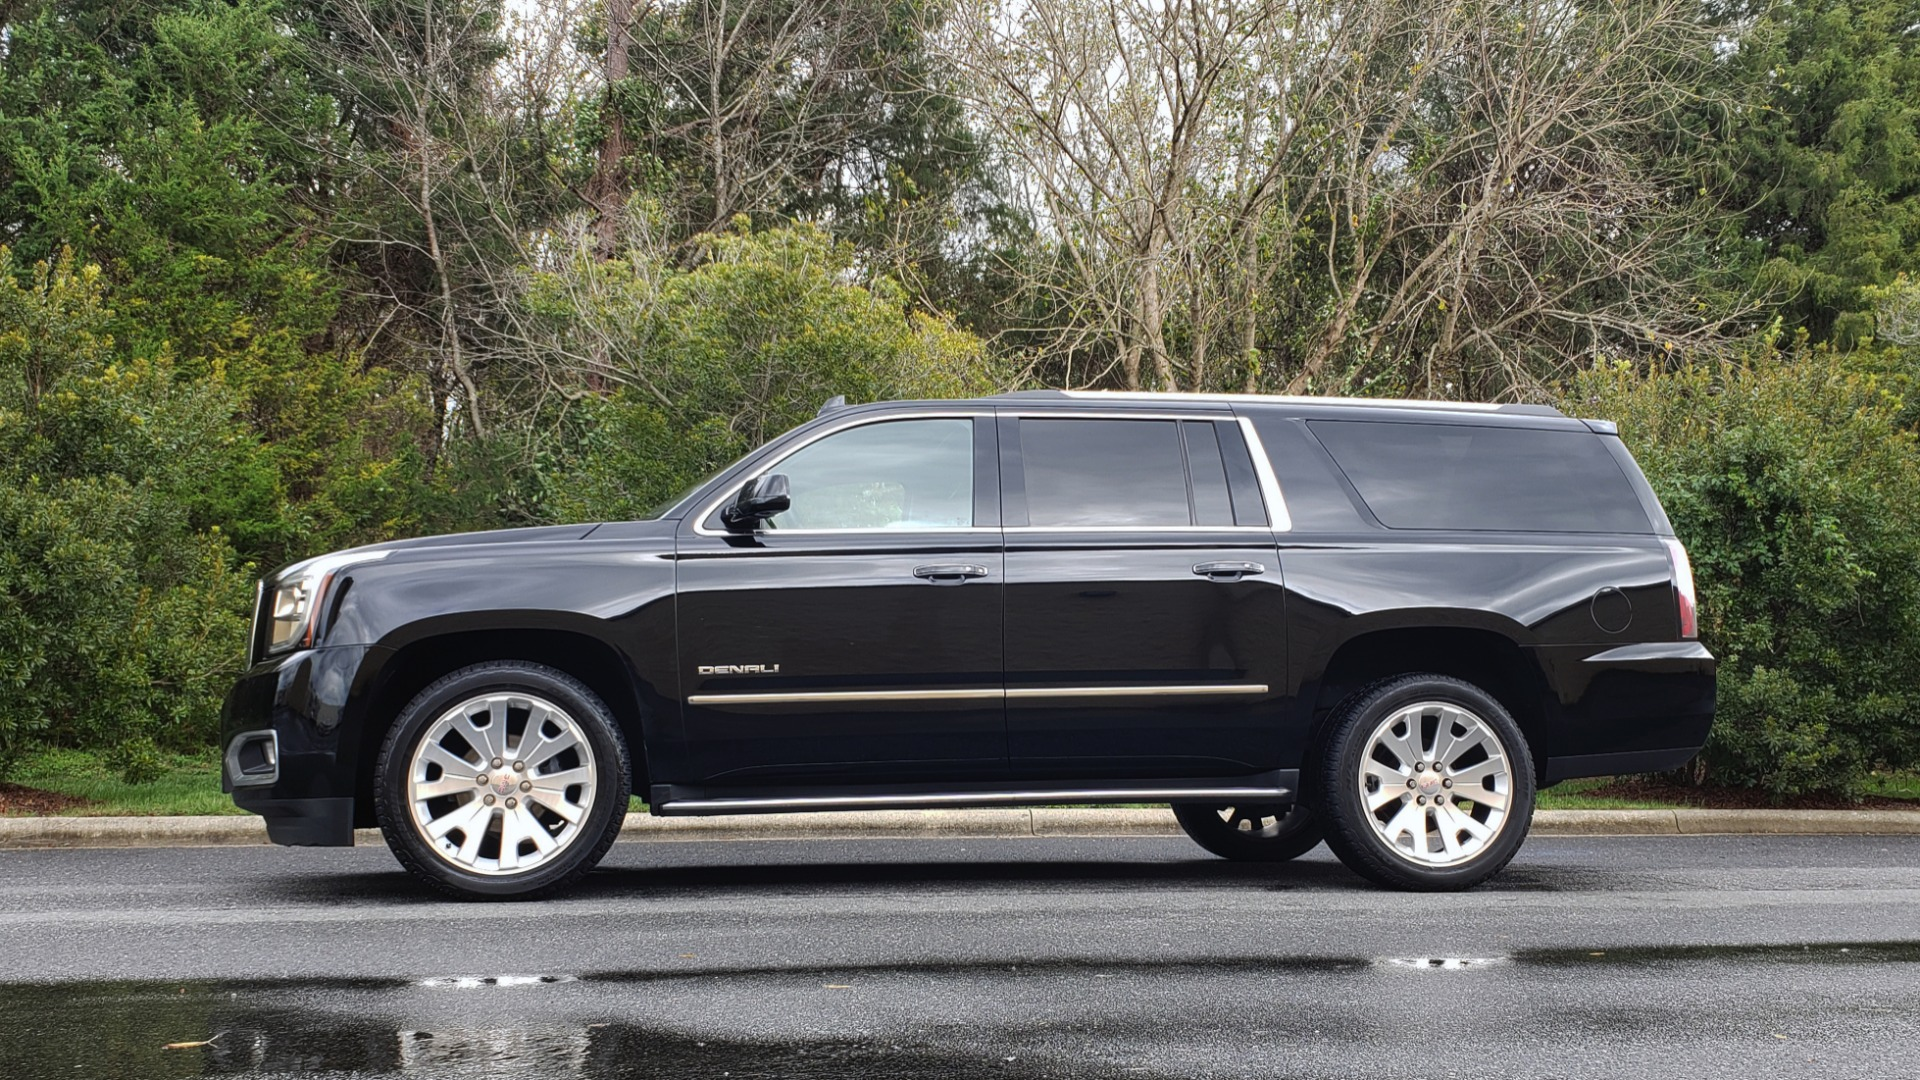 Used 2017 GMC YUKON XL DENALI 4WD / NAV / SUNROOF / ENT / 3-ROWS / BOSE / REARVIEW for sale Sold at Formula Imports in Charlotte NC 28227 2